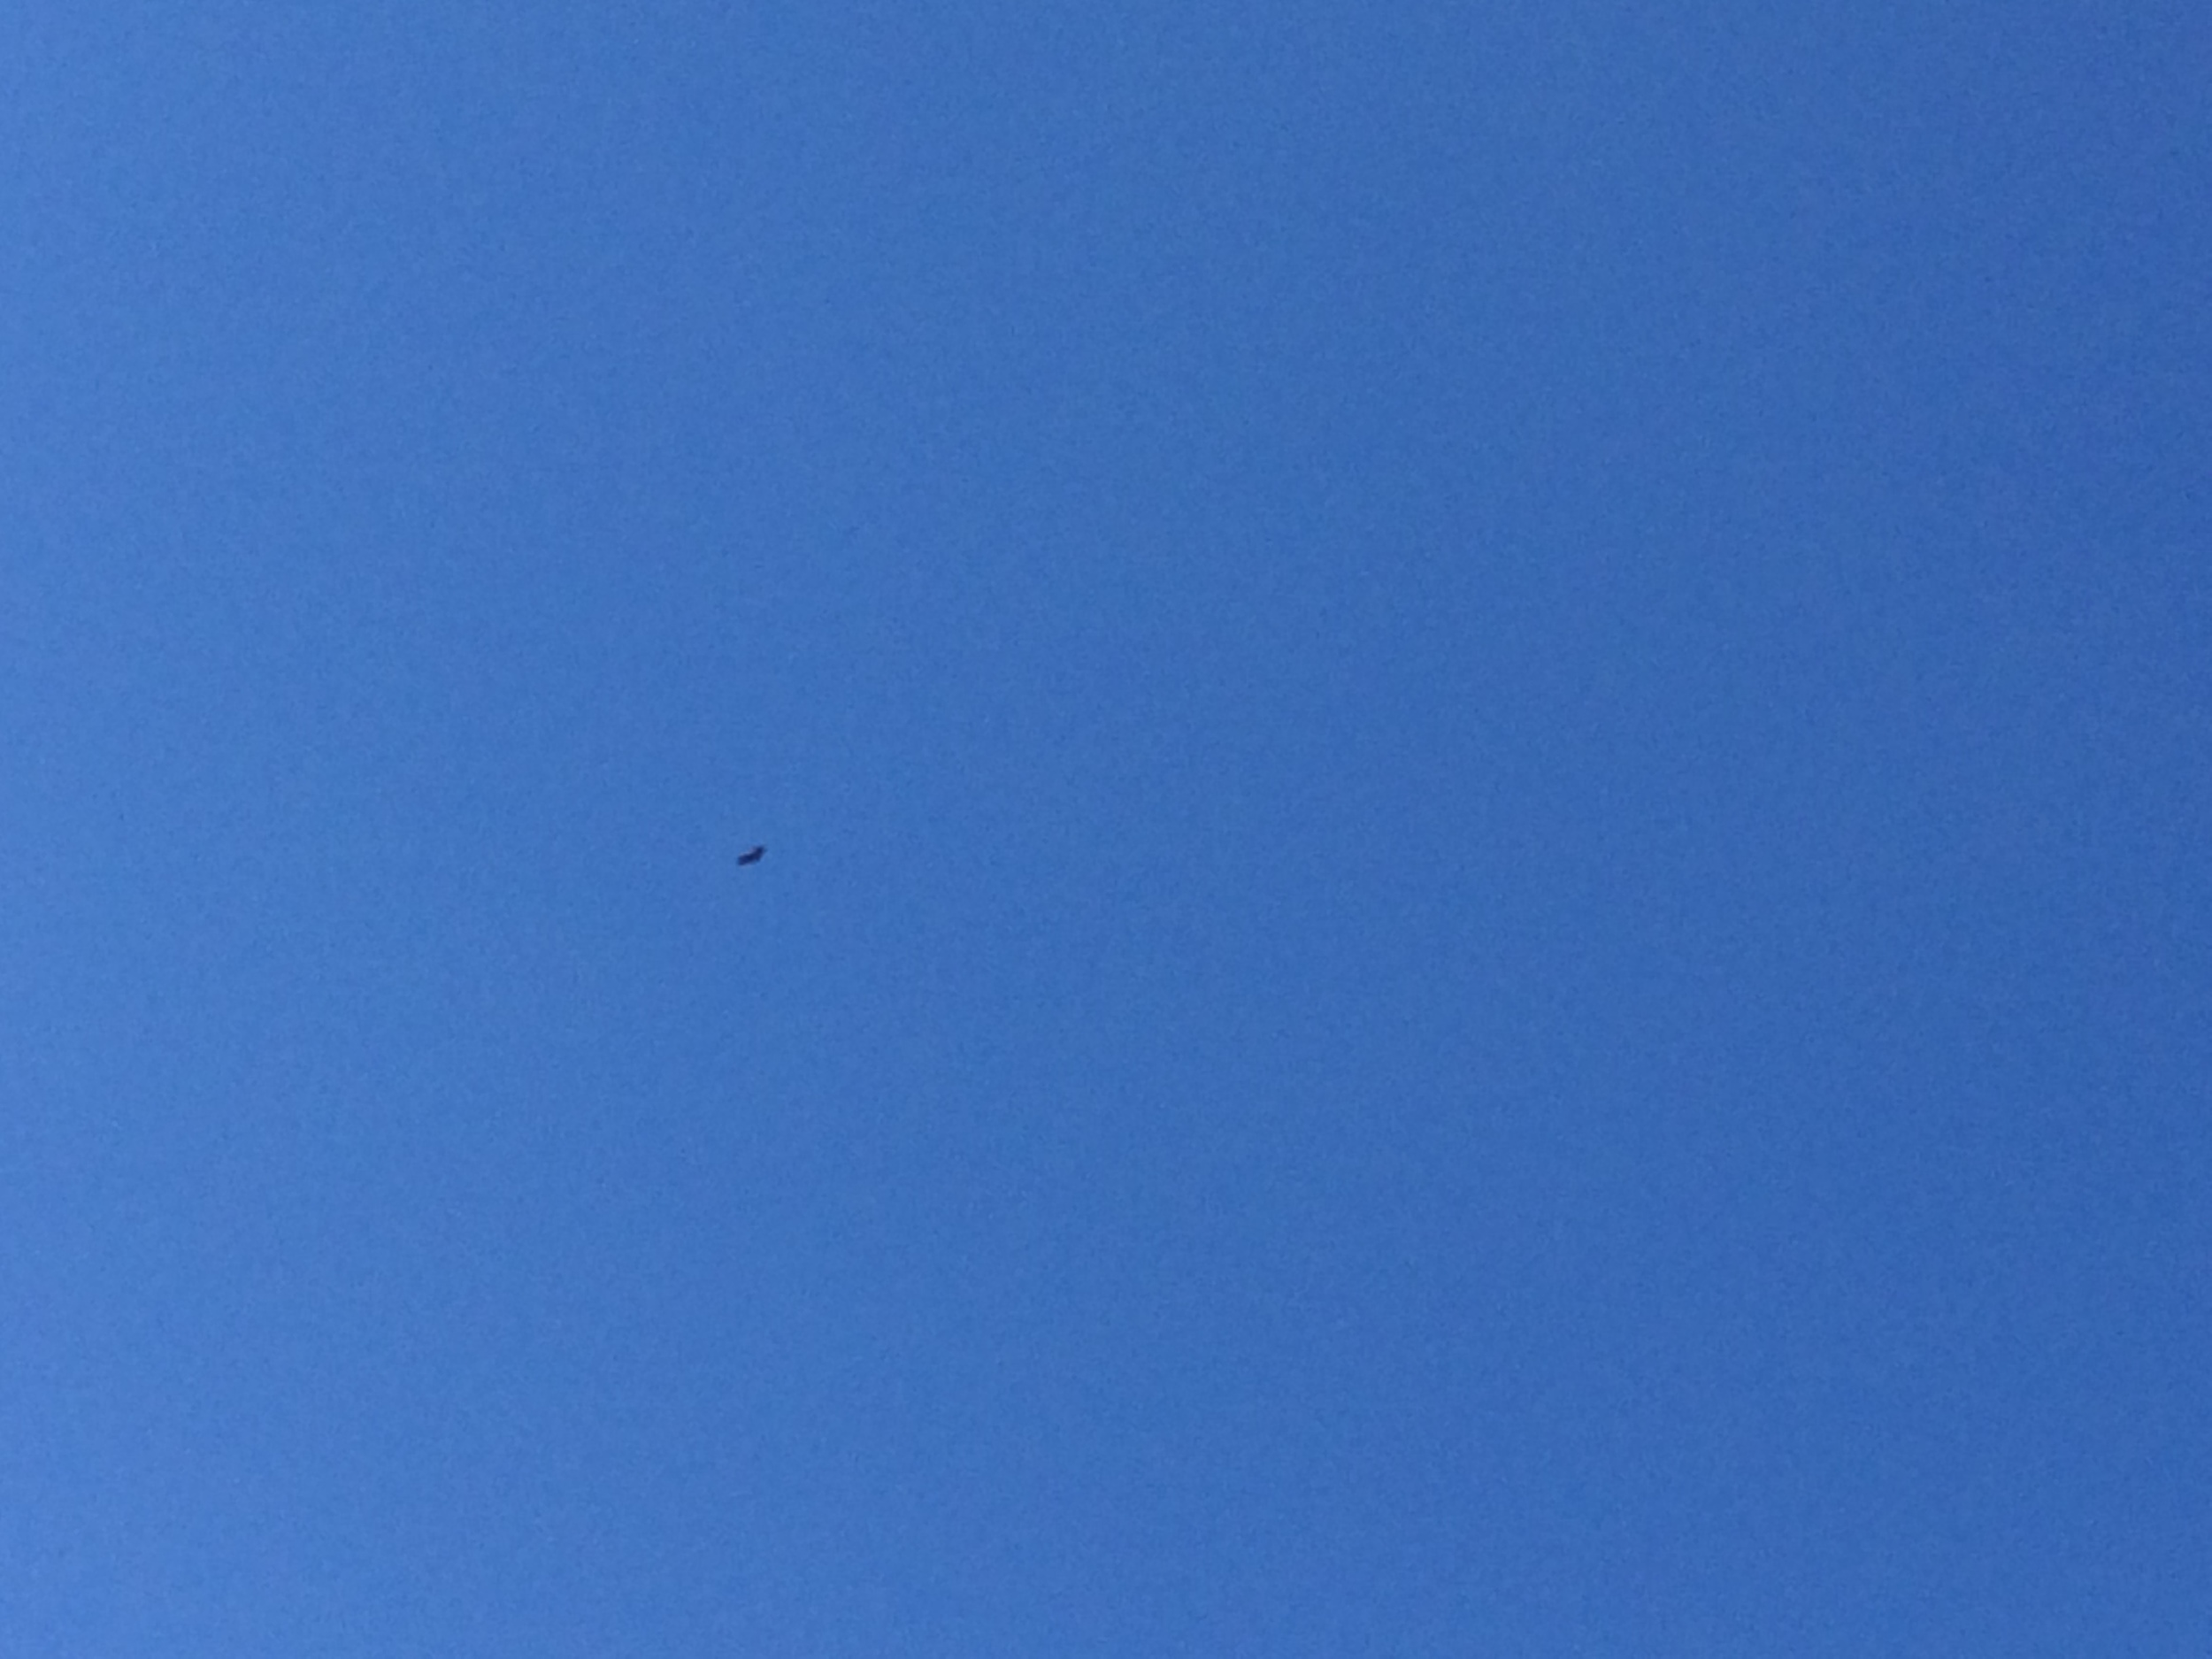 If you look close you can make out that the black speck is a California condor.